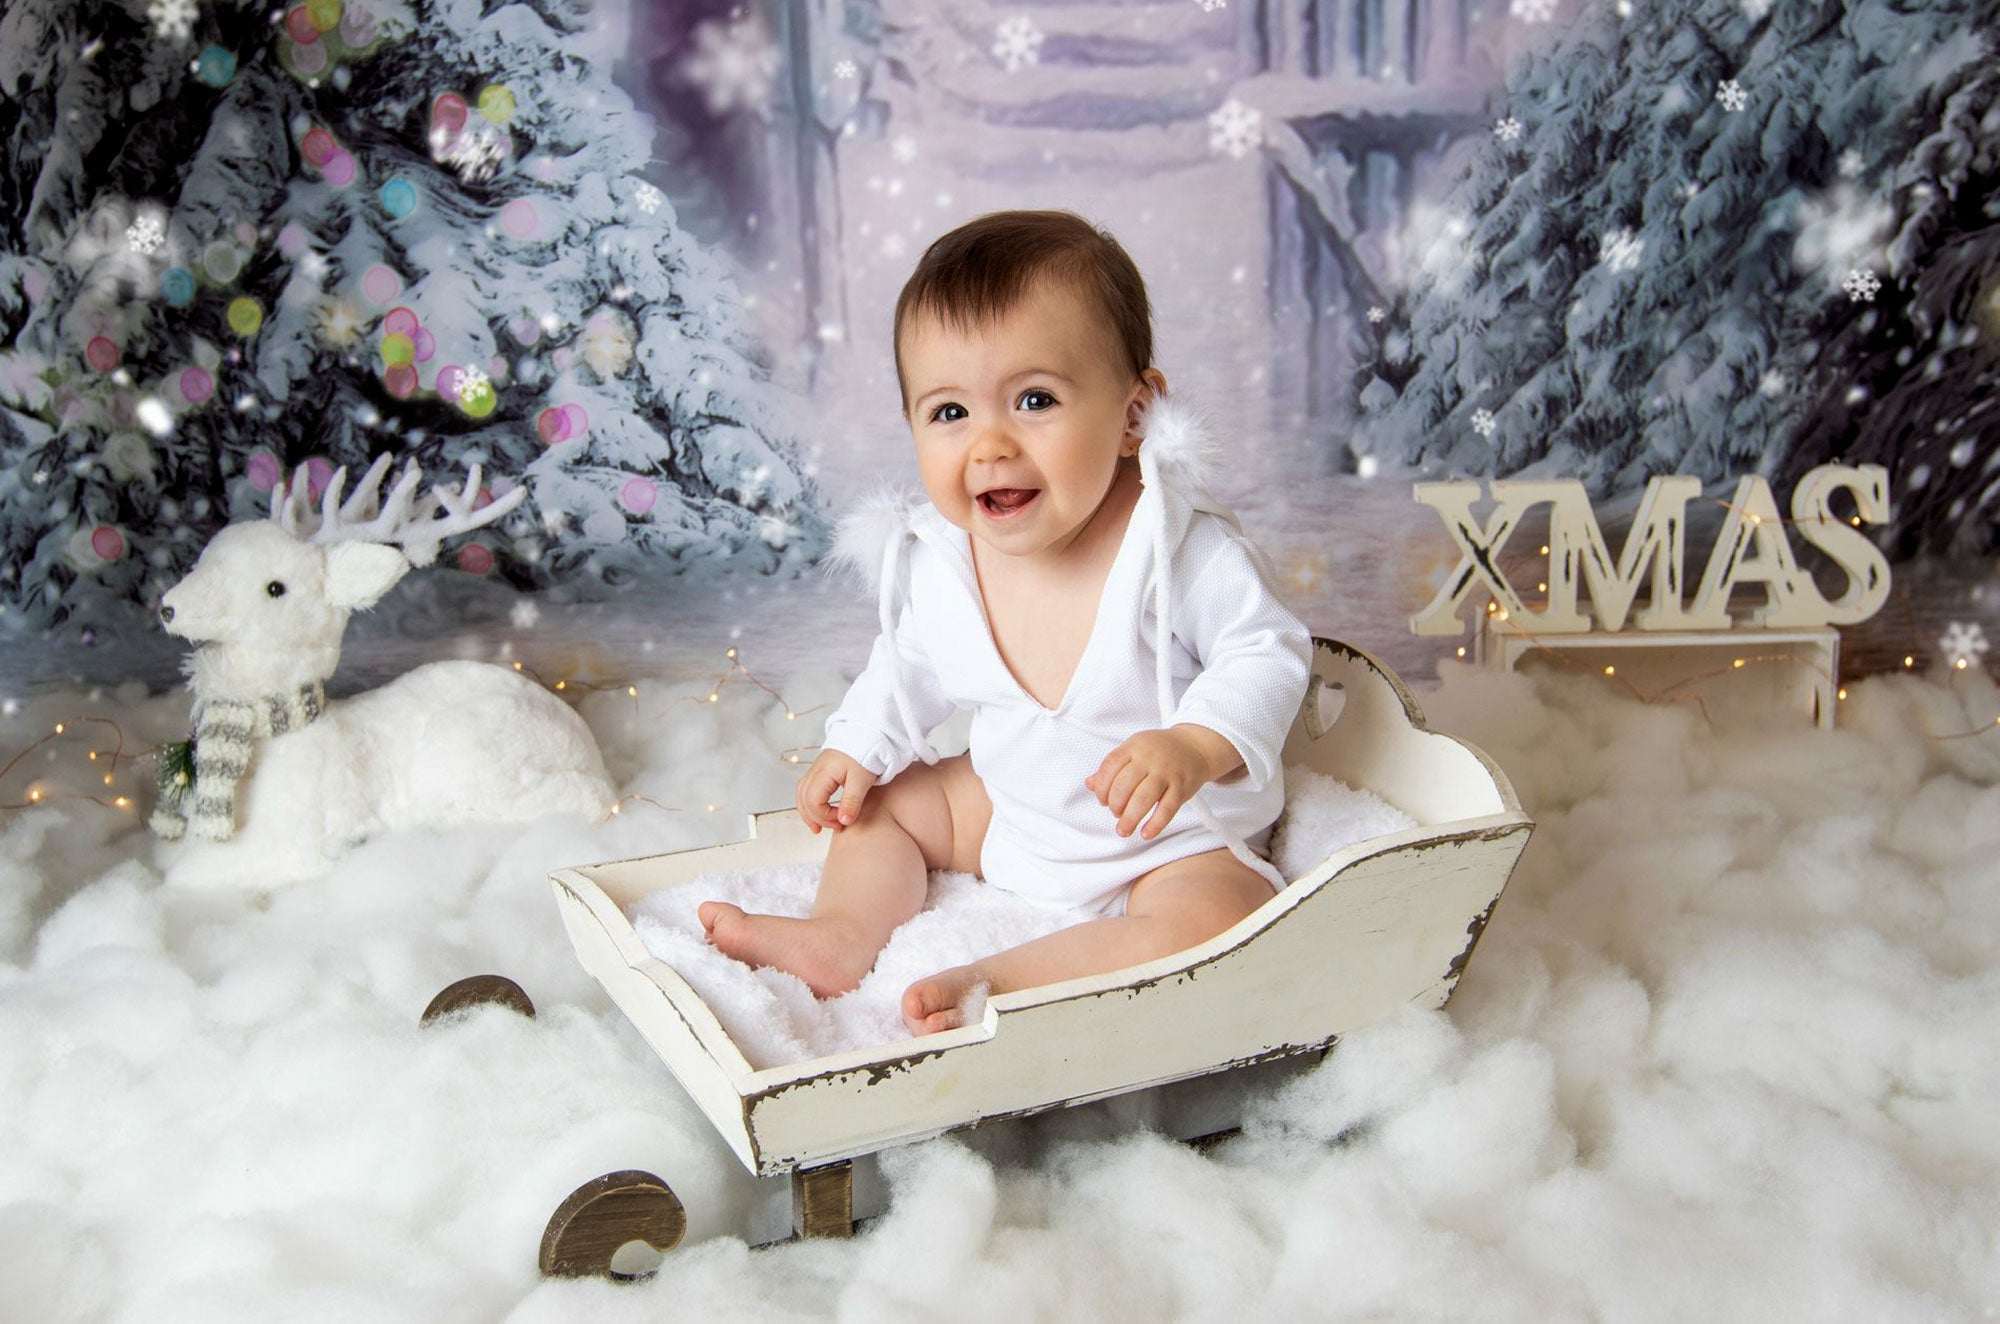 Lovely rustic handmade sleigh made with natural products. This sled is designed as an authentic replica of the traditional style Christmas sled. Ideal to cradle newborns during your photo shoots.